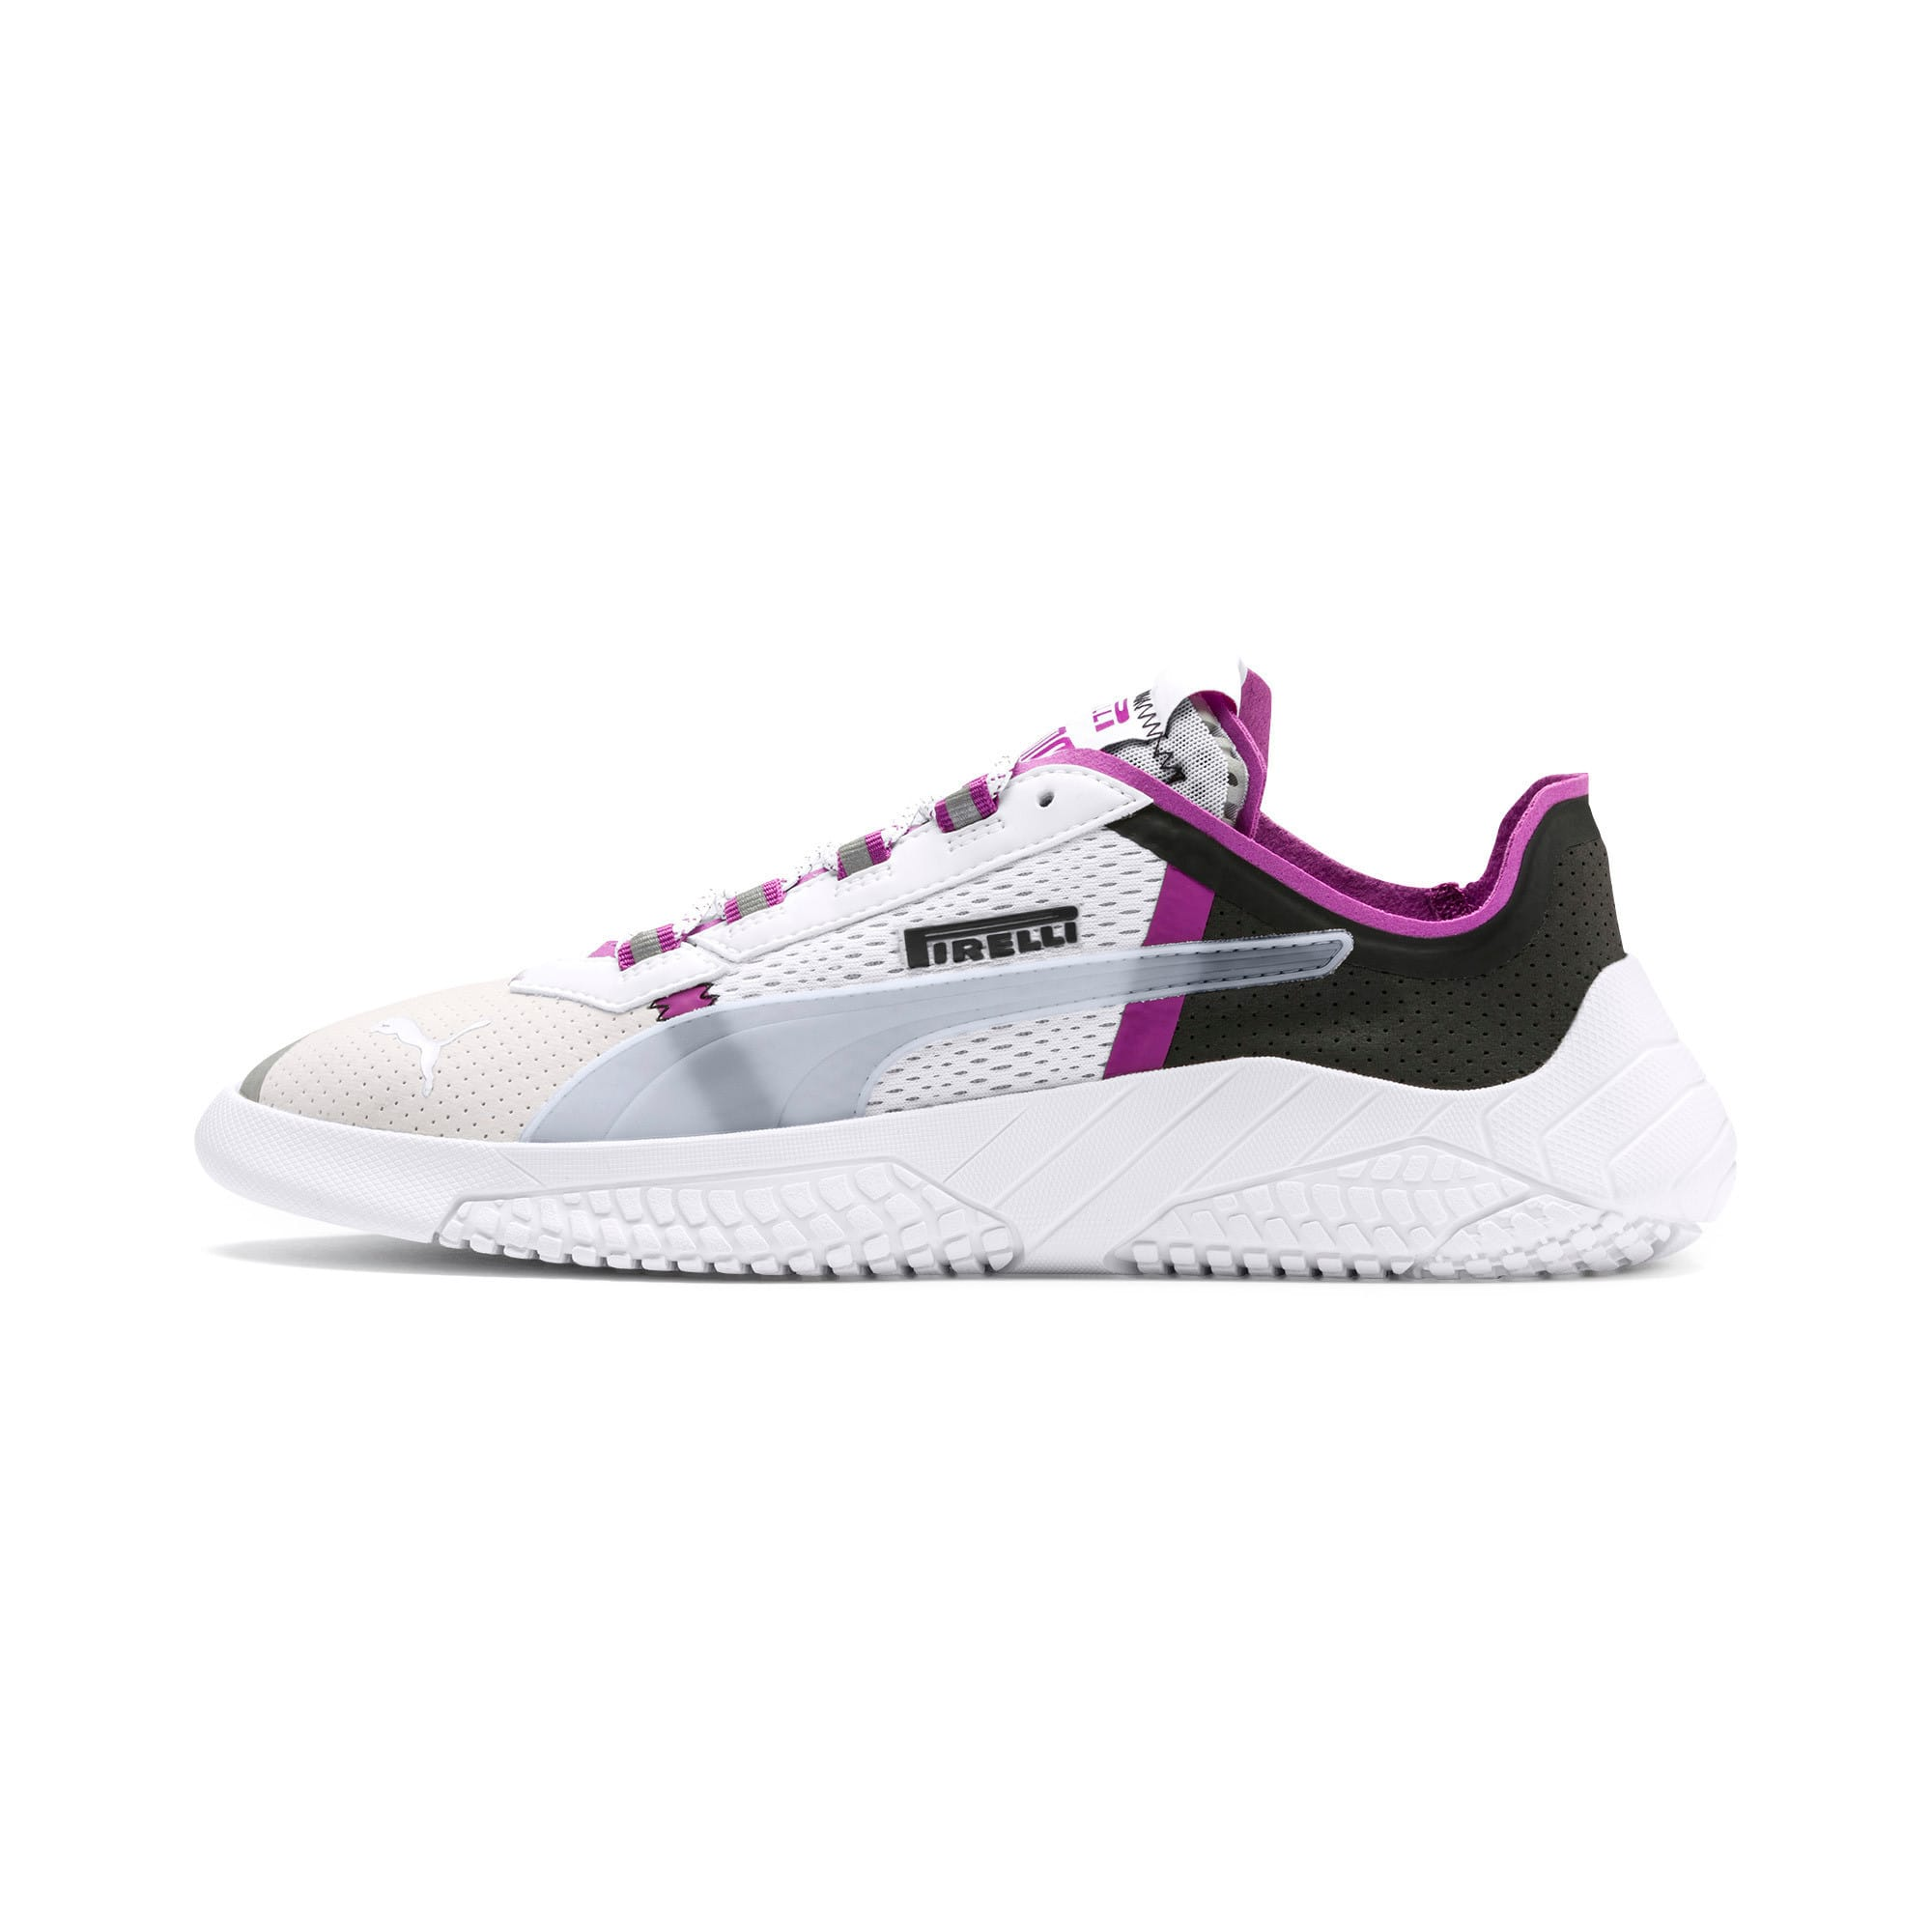 Thumbnail 1 of Scarpe da ginnastica Pirelli Replicat-X, White-Hyacinth Viol-Red, medium